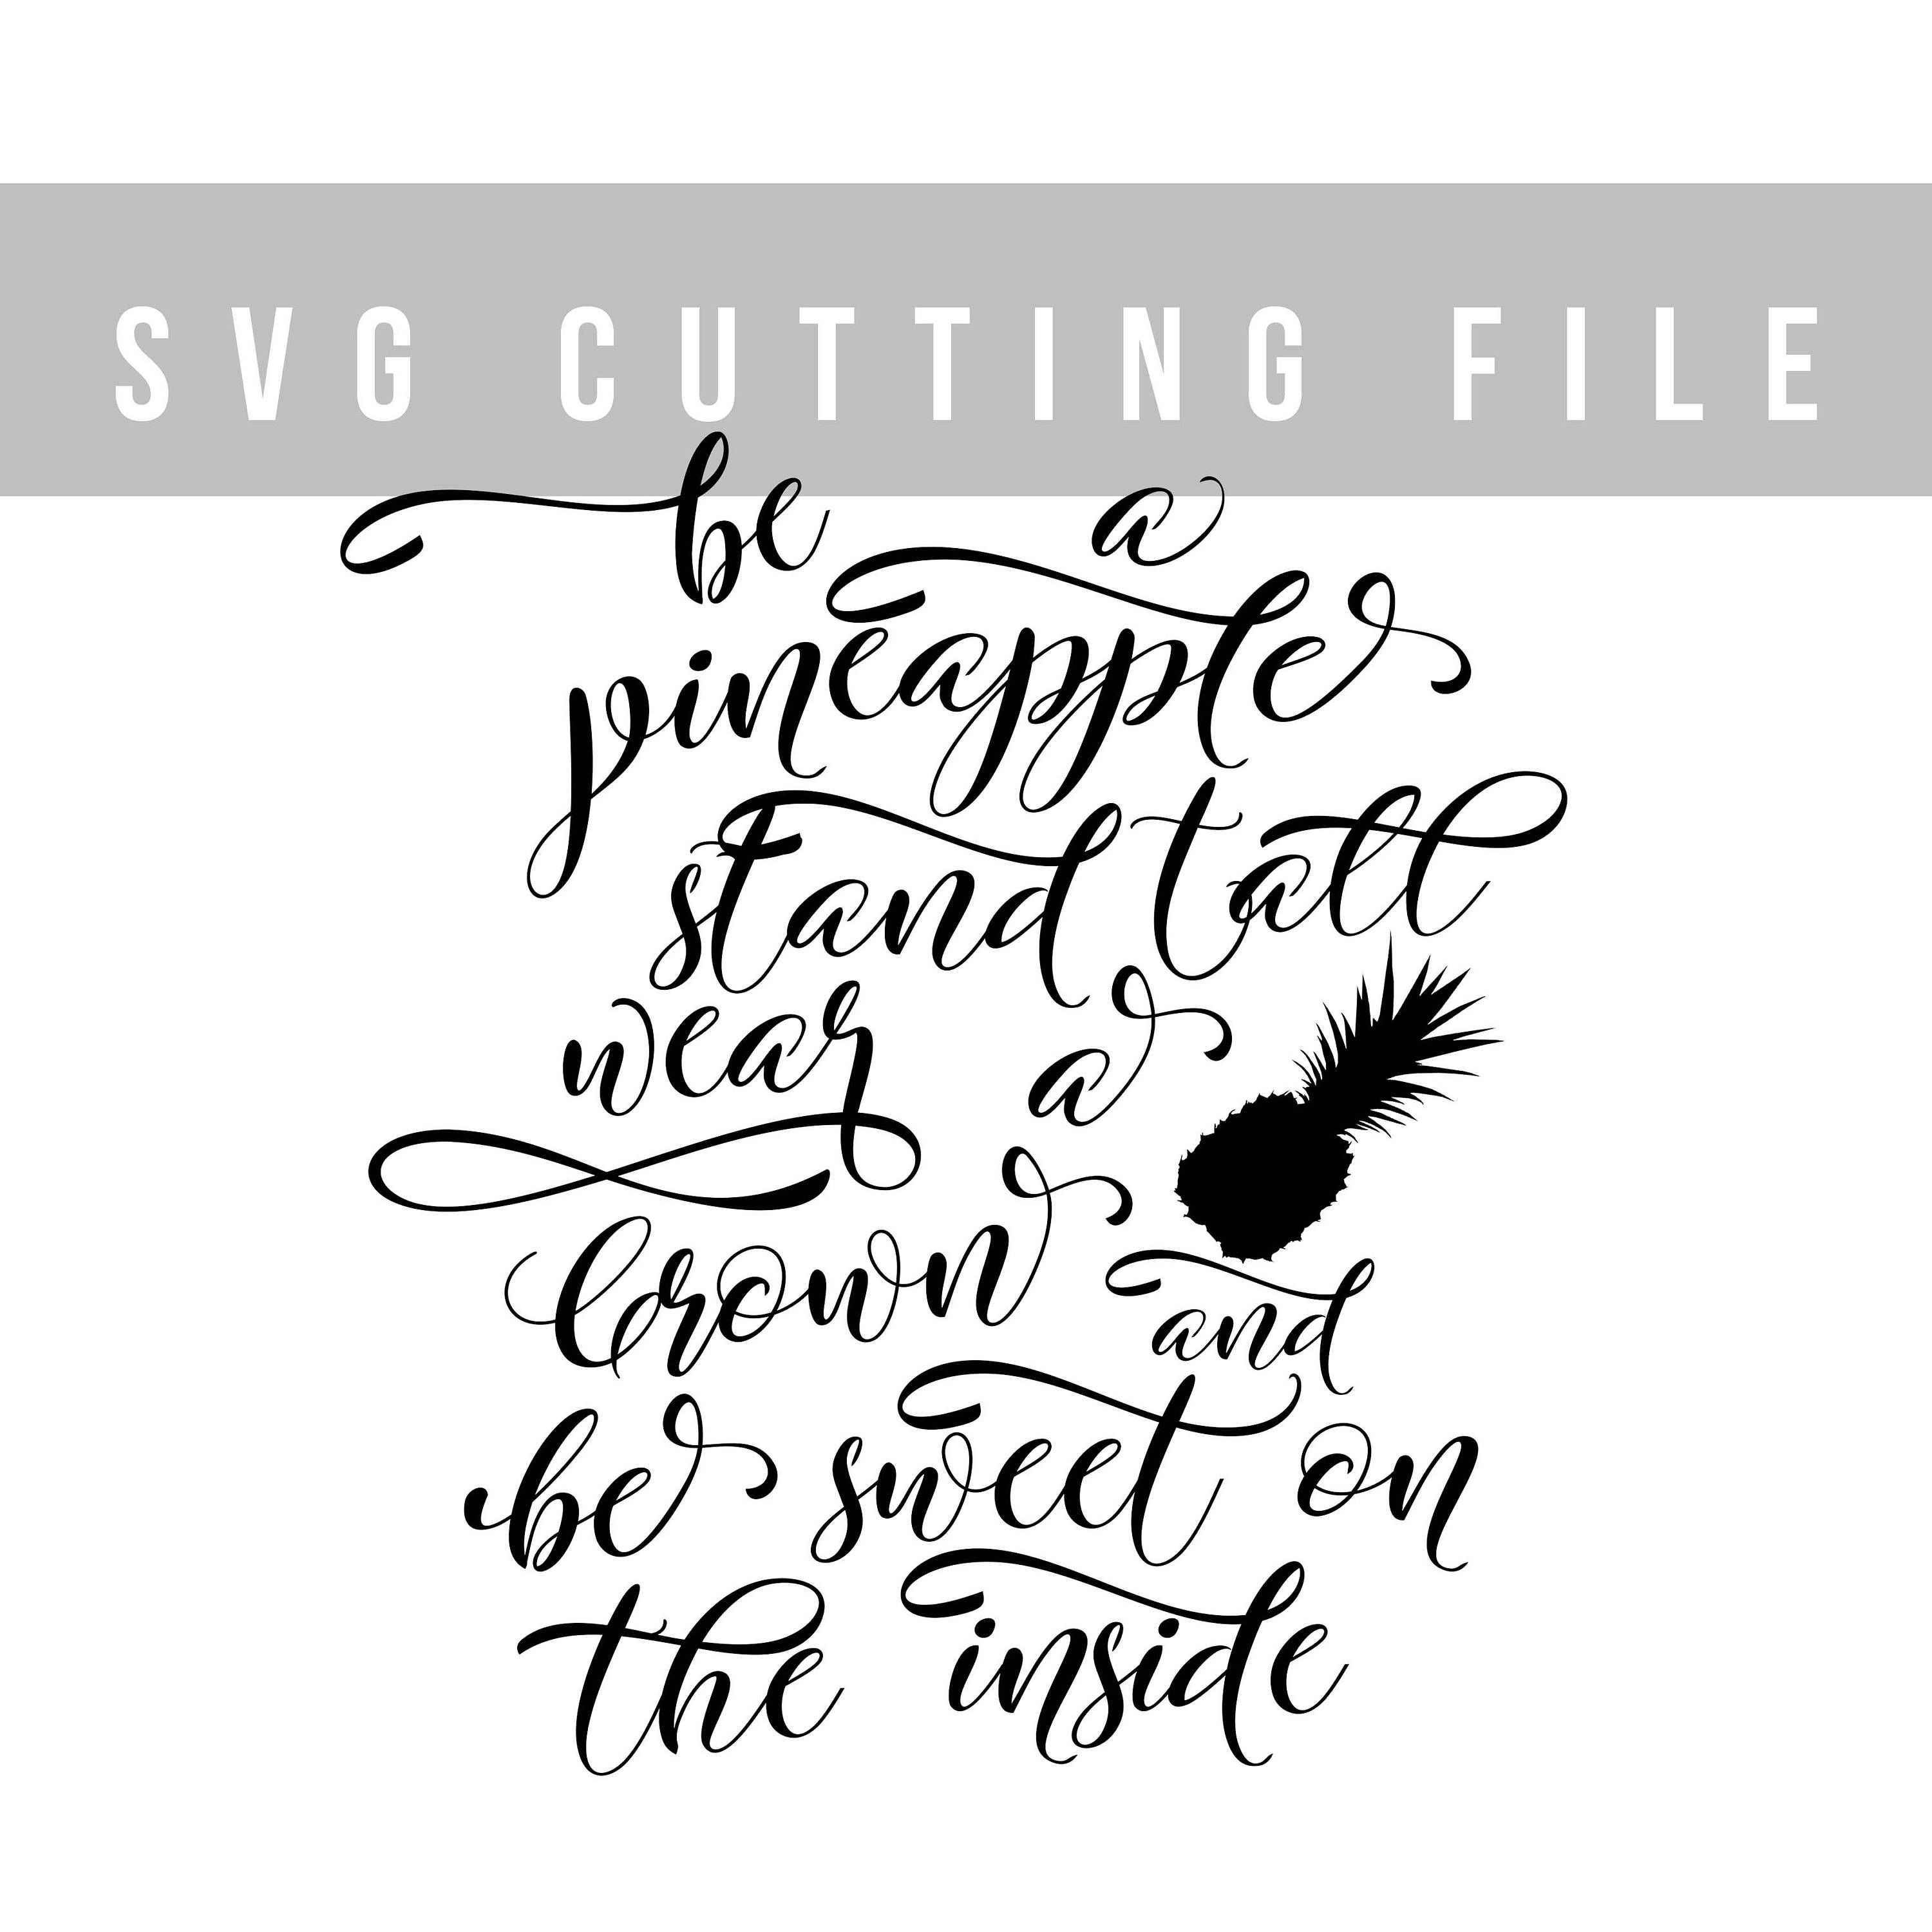 Be a pineapple svg Stand tall, wear a crown and be sweet